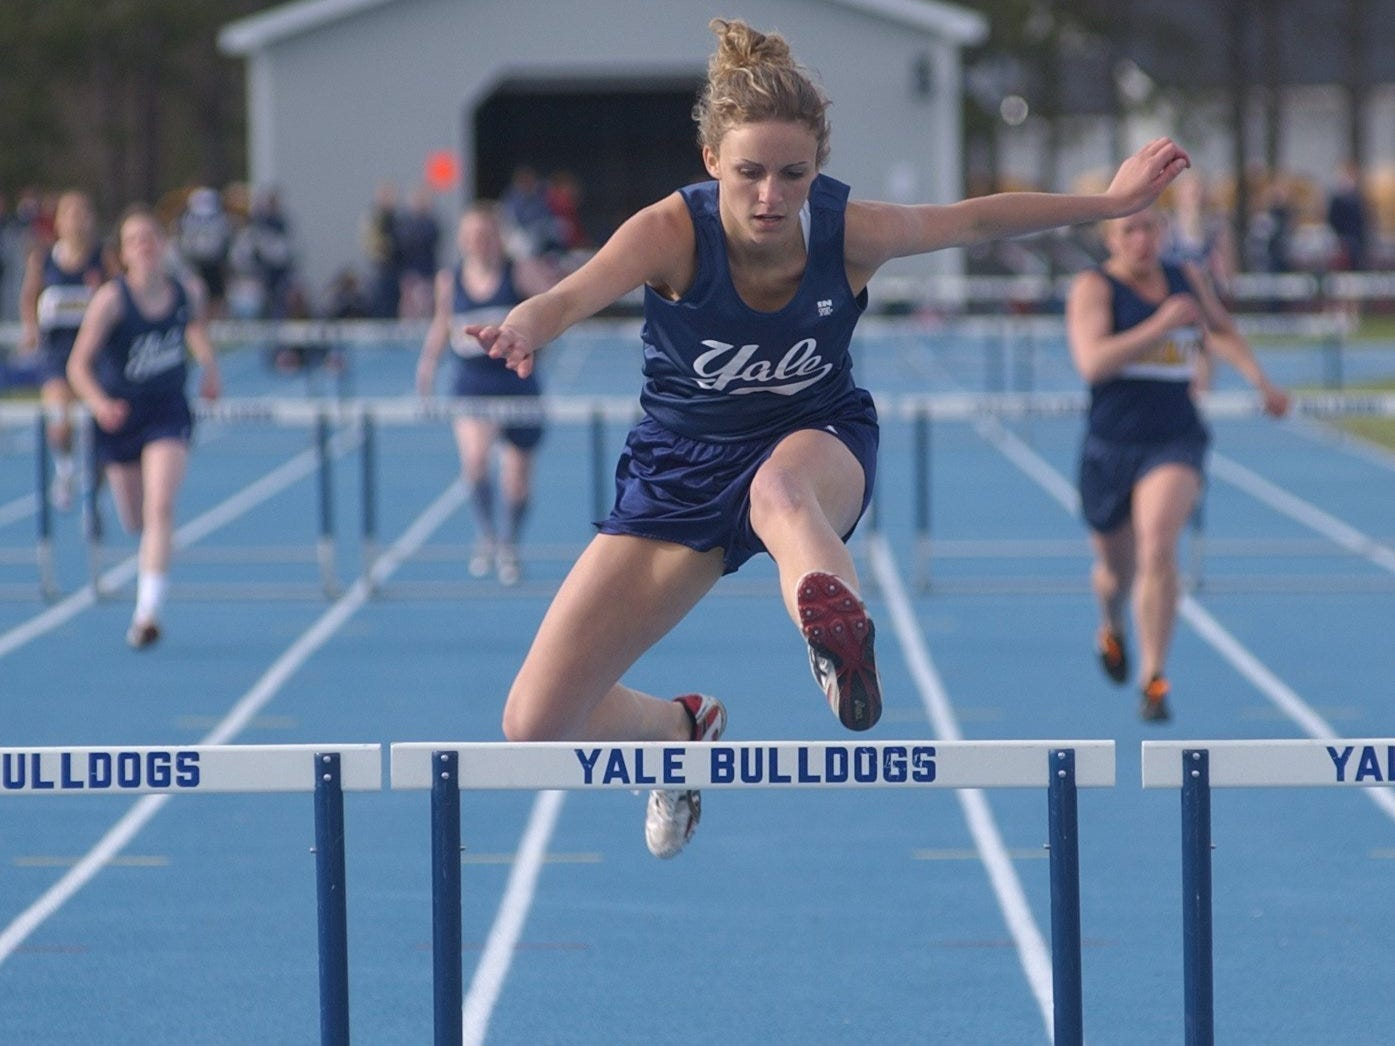 Yale's Courtney Kersten shares the Blue Water Meet of Champions record in the 100 hurdles with Raquel Tuma of Algonac at 15.1 seconds.